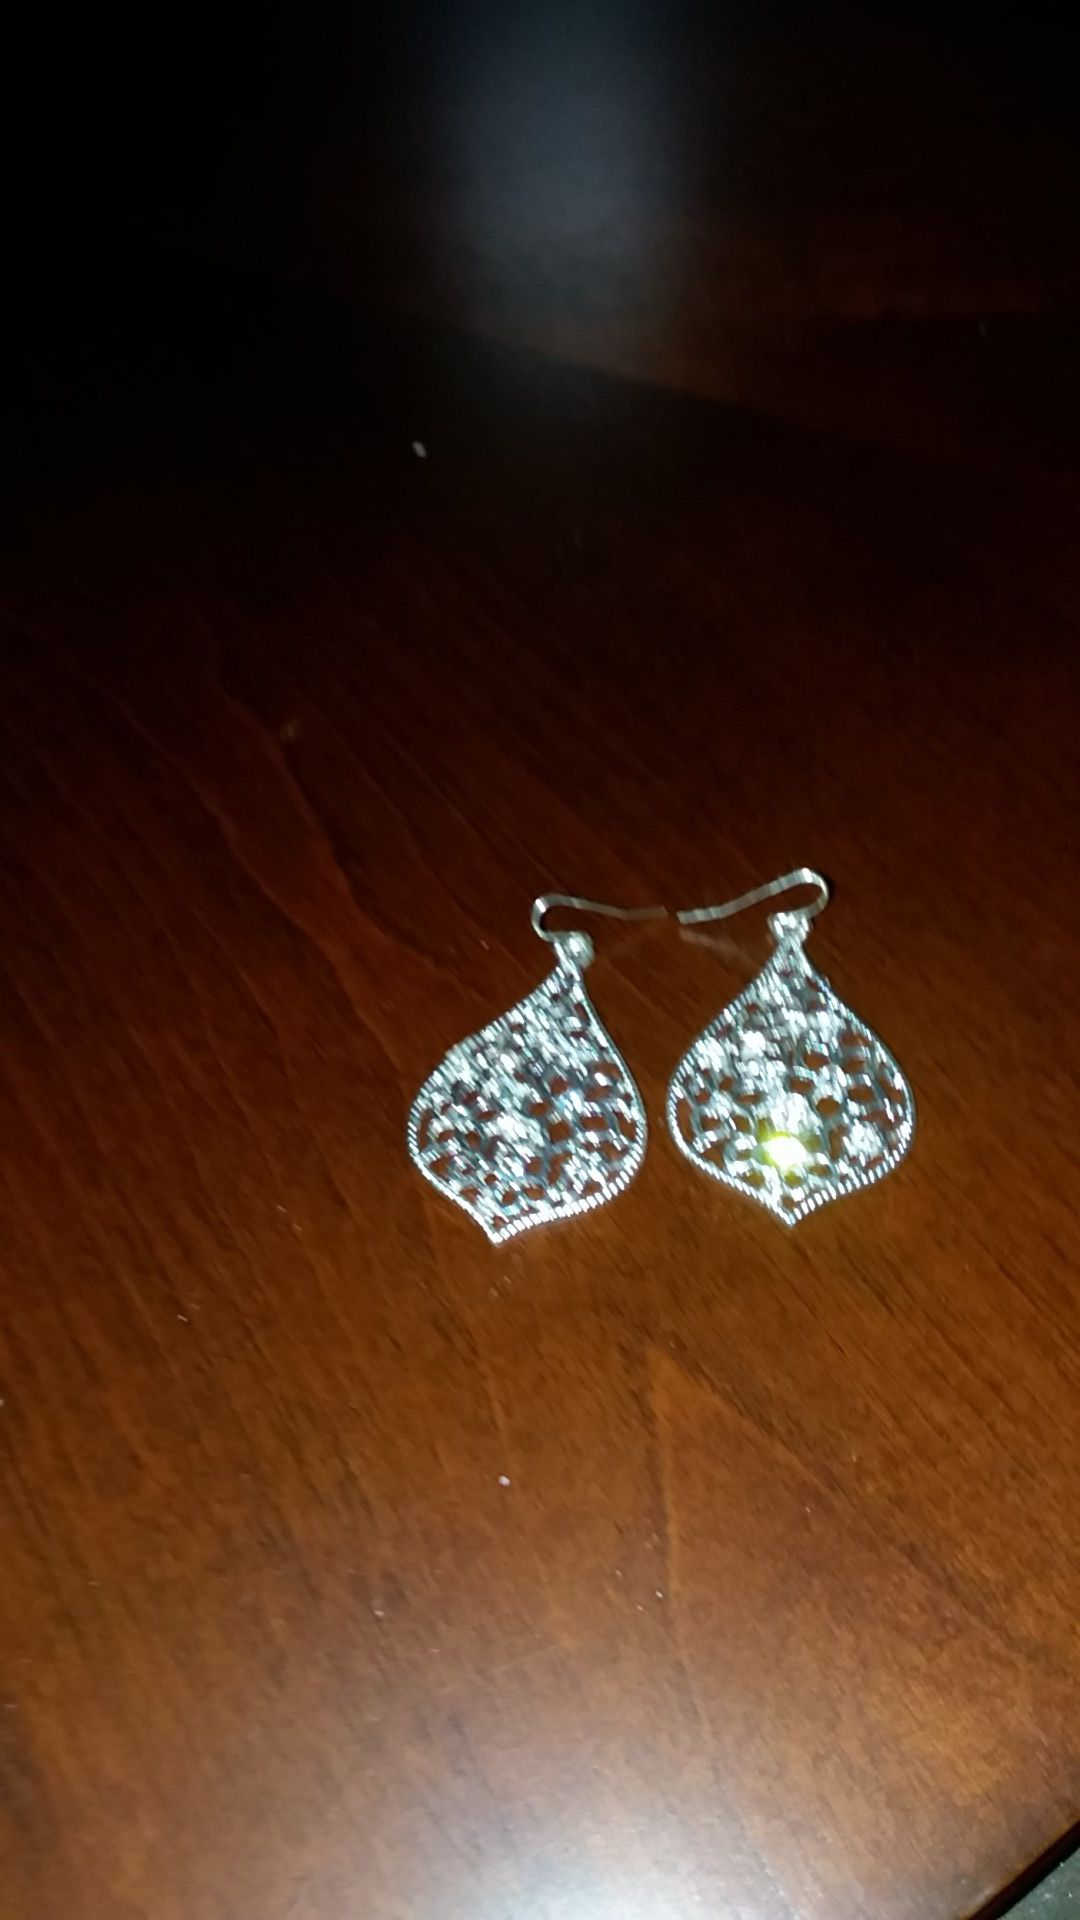 Tear-drop pierced earrings, flower design studded with crystals. New, never worn.